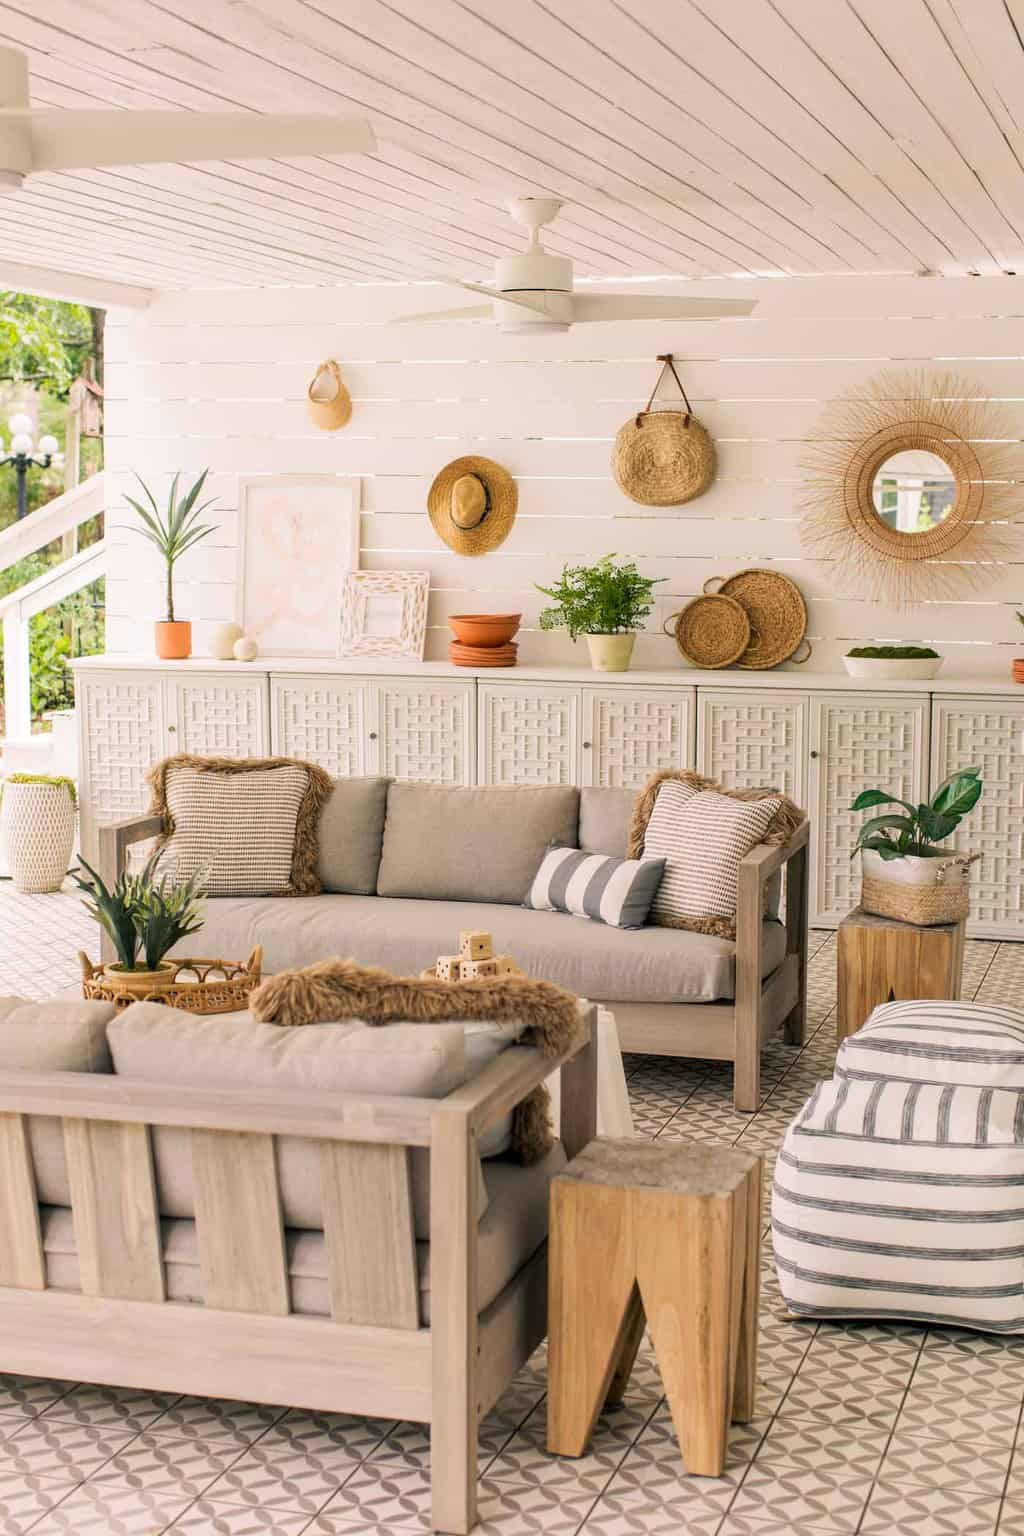 beachy outdoor tiled patio with couches